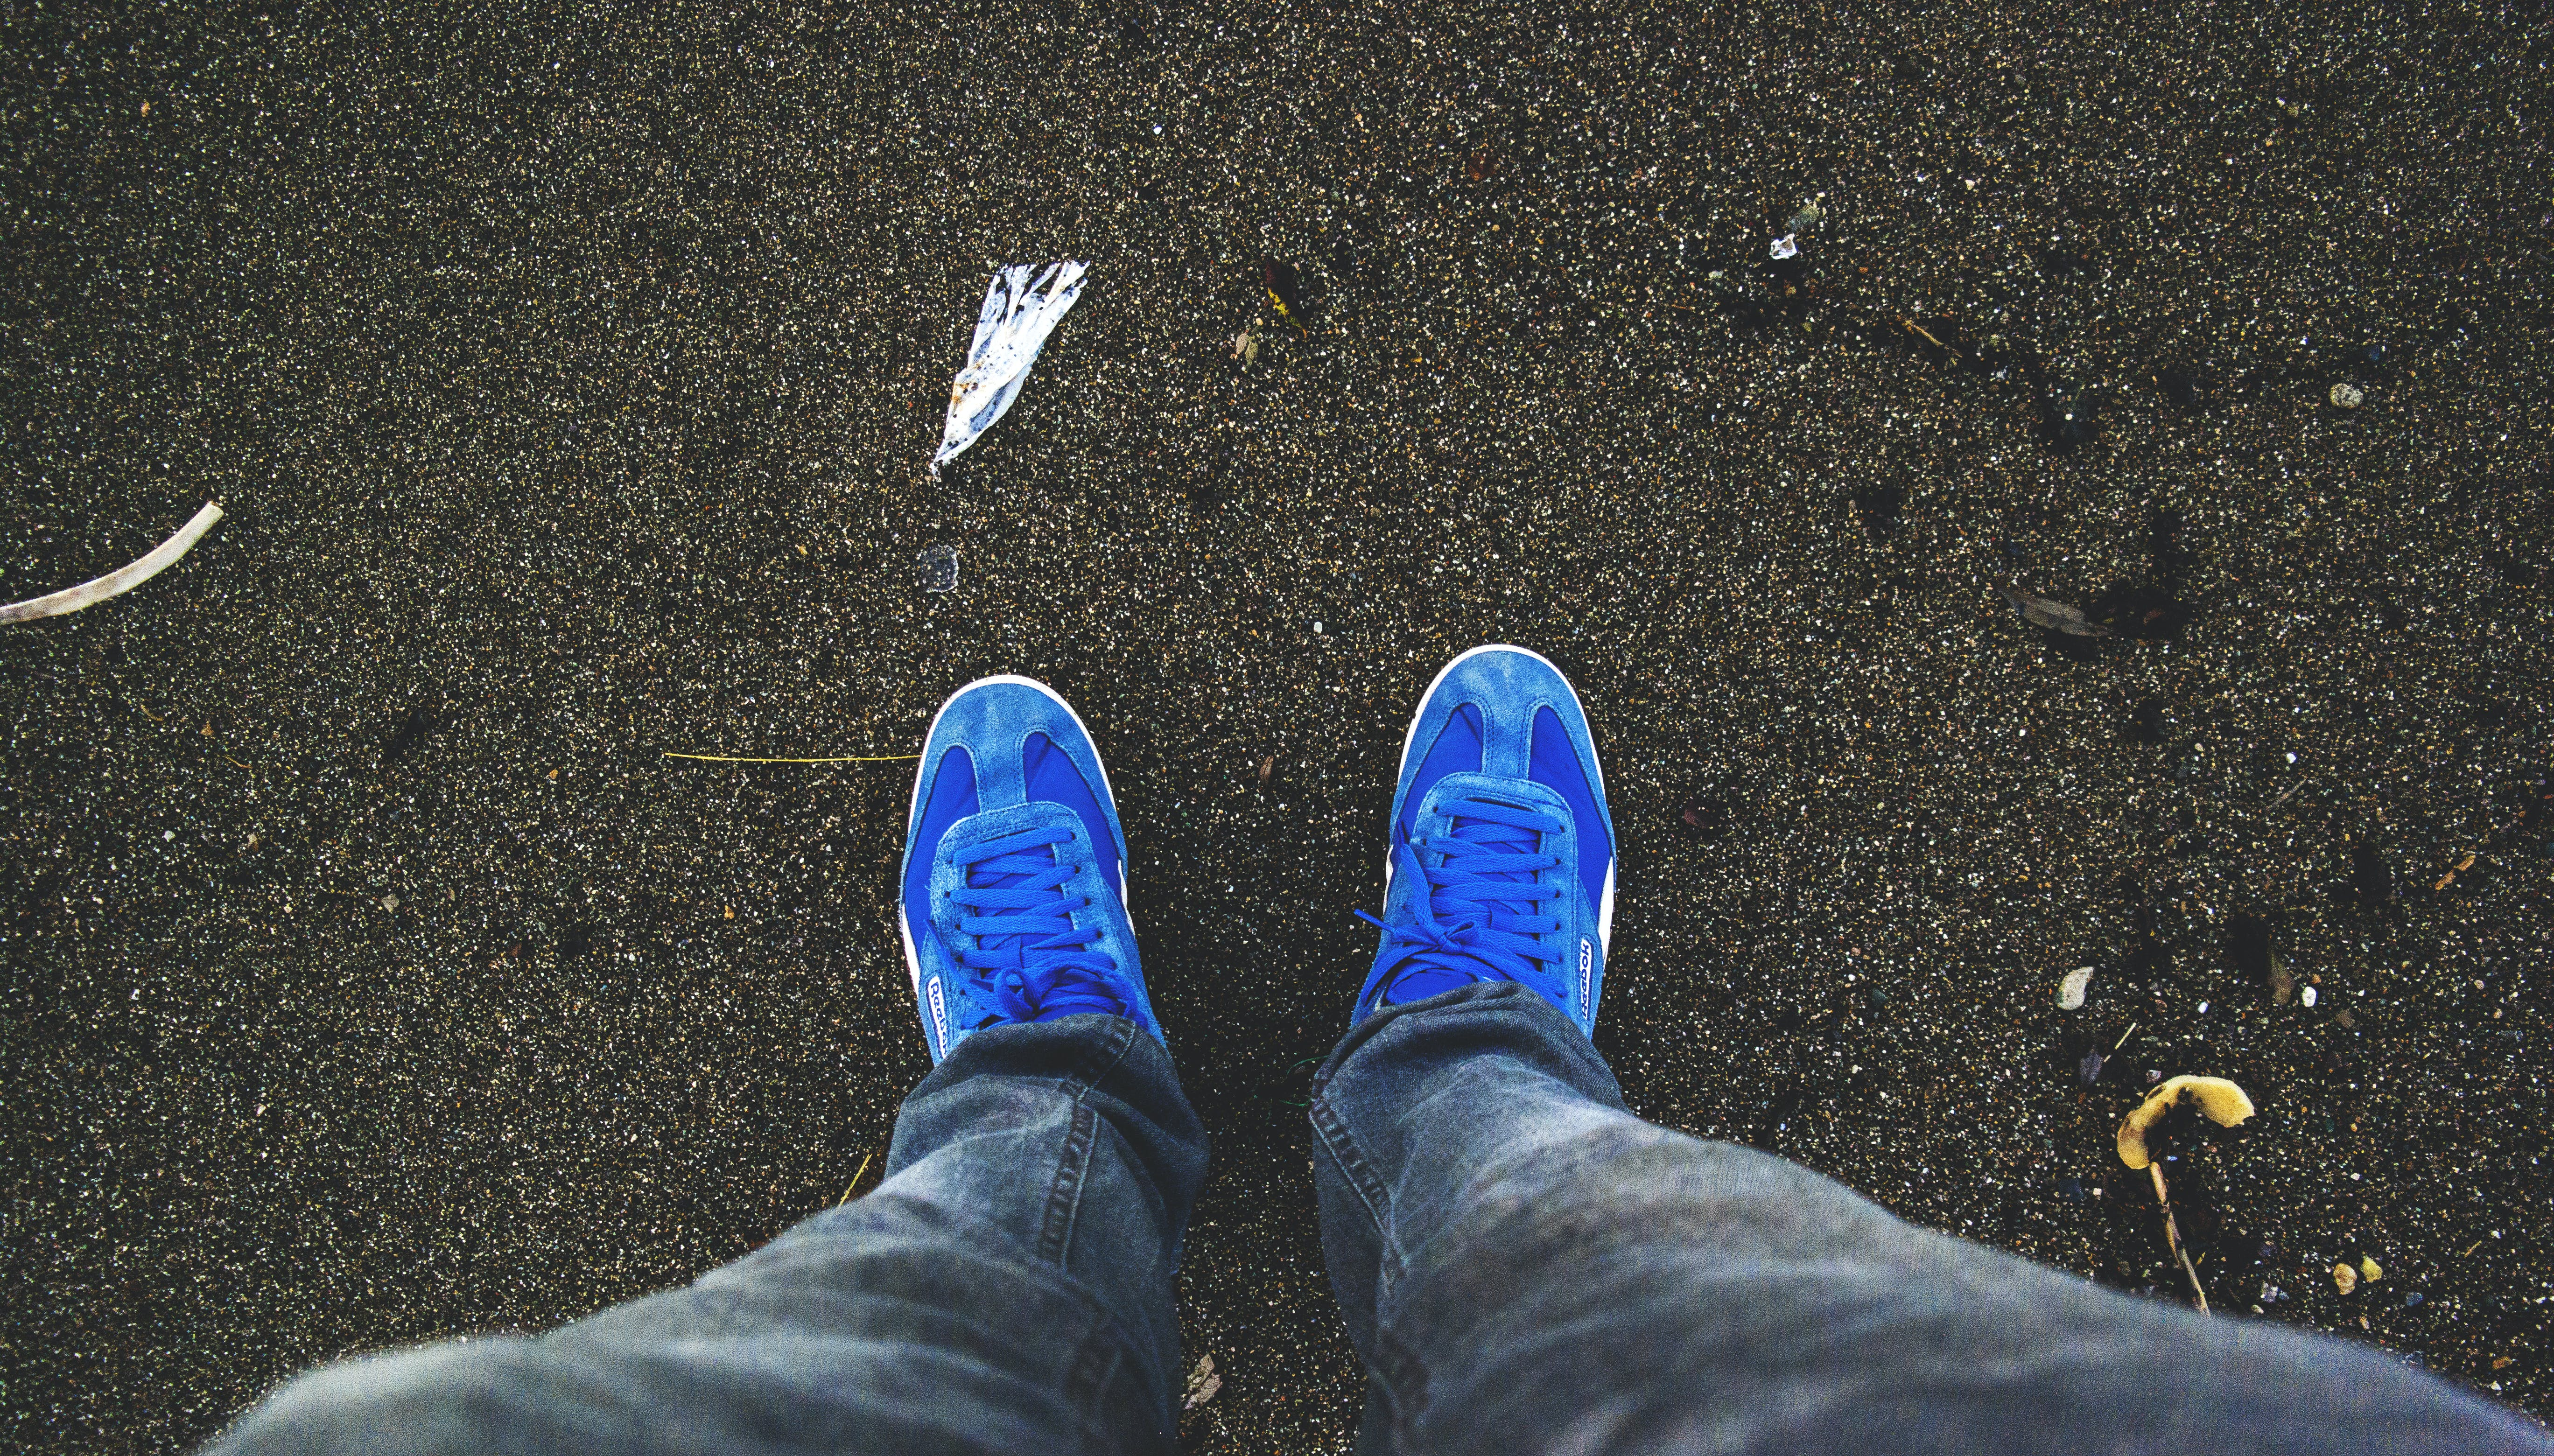 Person Wearing Pair of Blue Sneakers